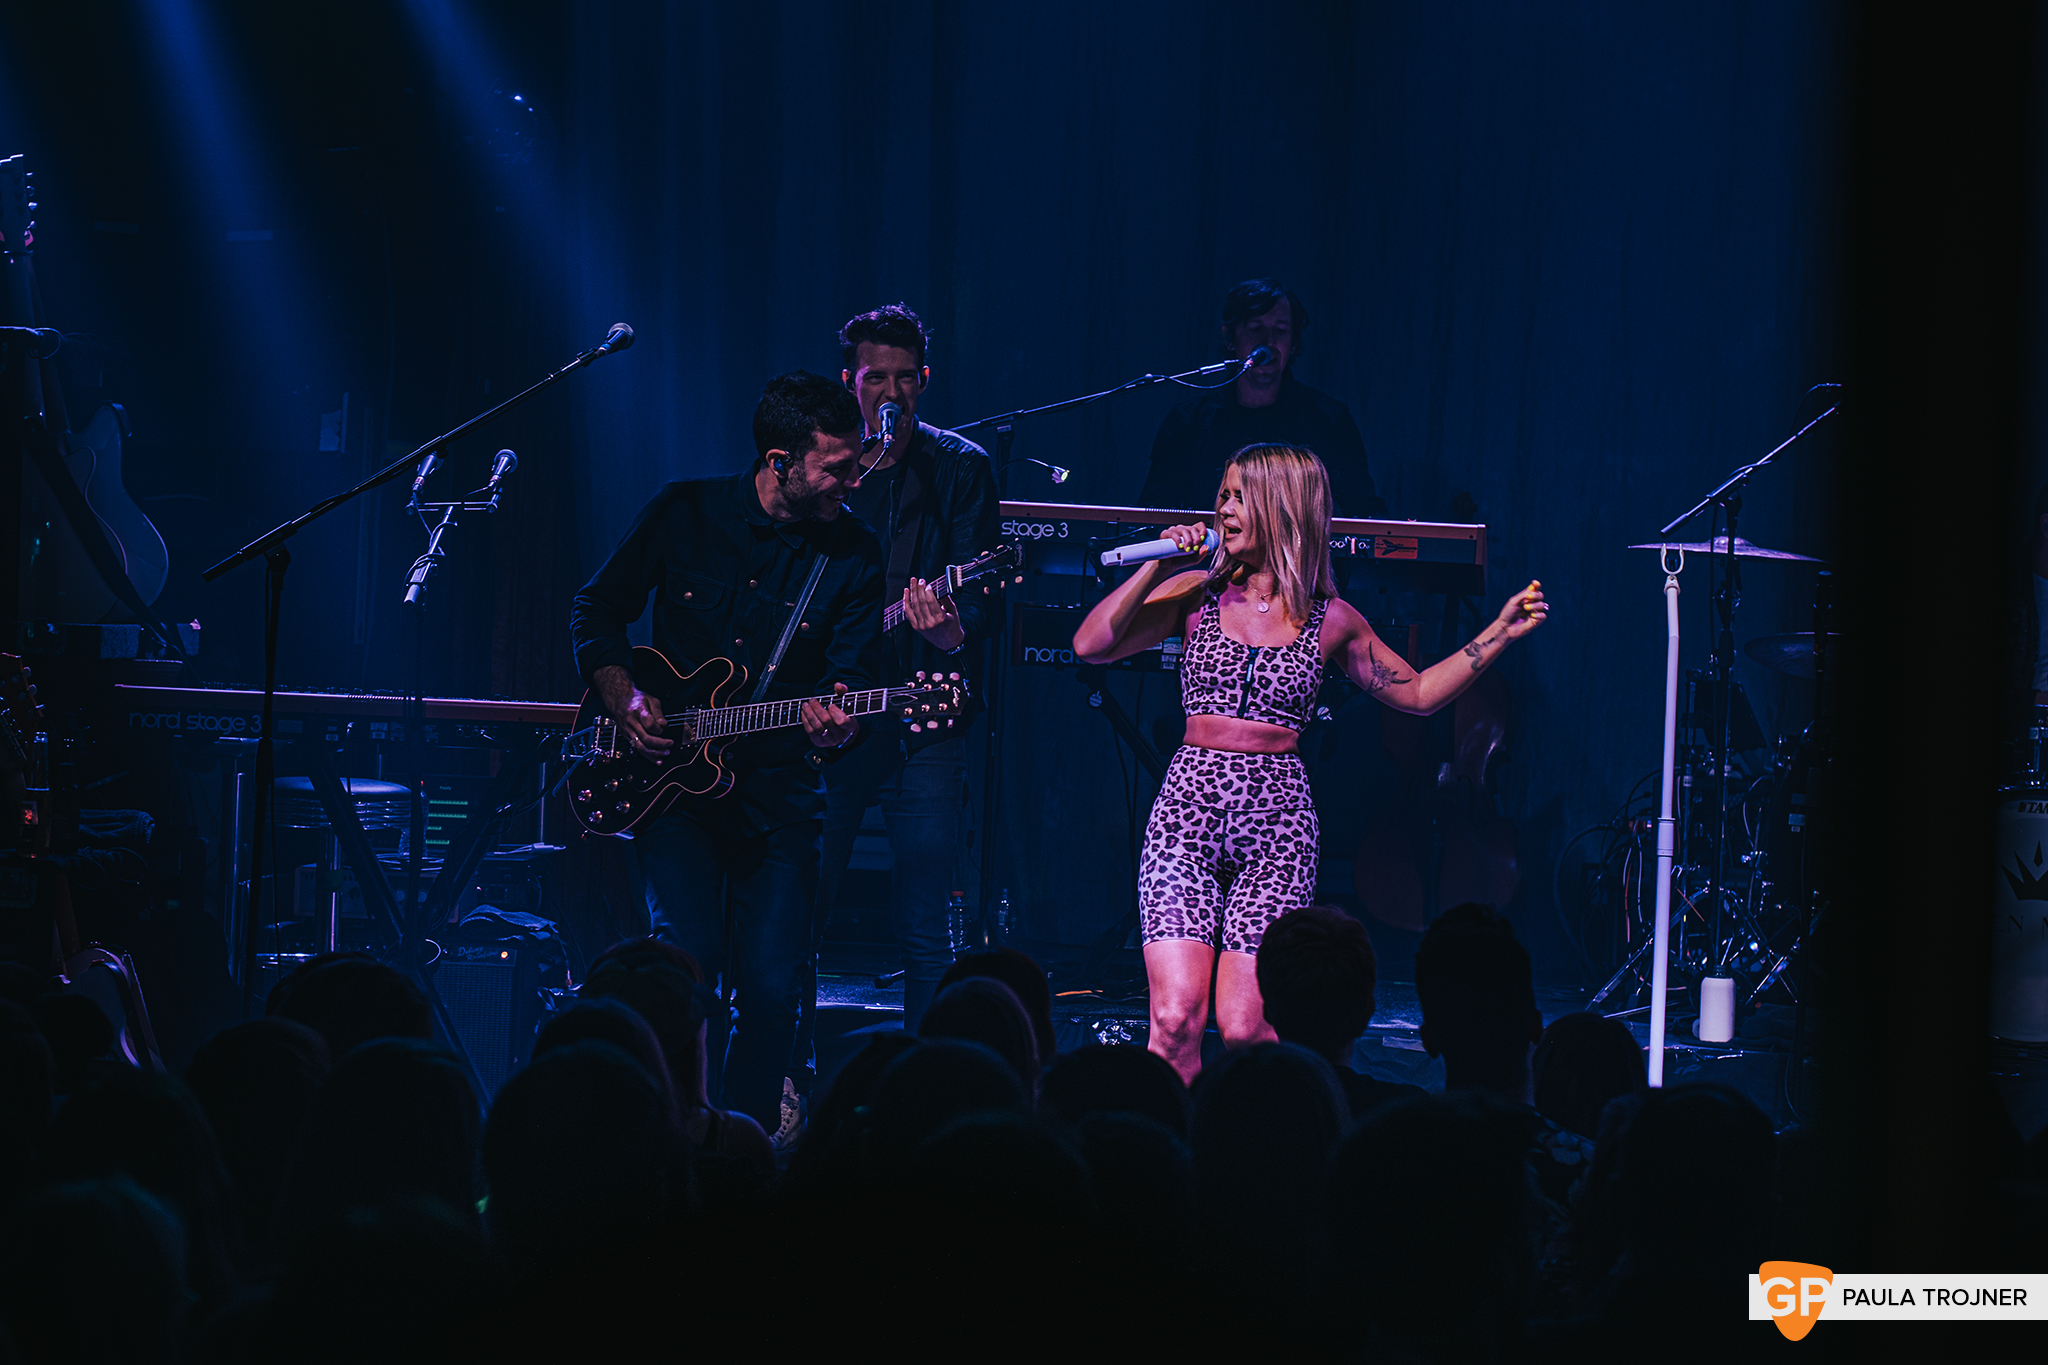 MAREN MORRIS @ THE ACADEMY BY PAULA TROJNER, 24.05.2019 (8)